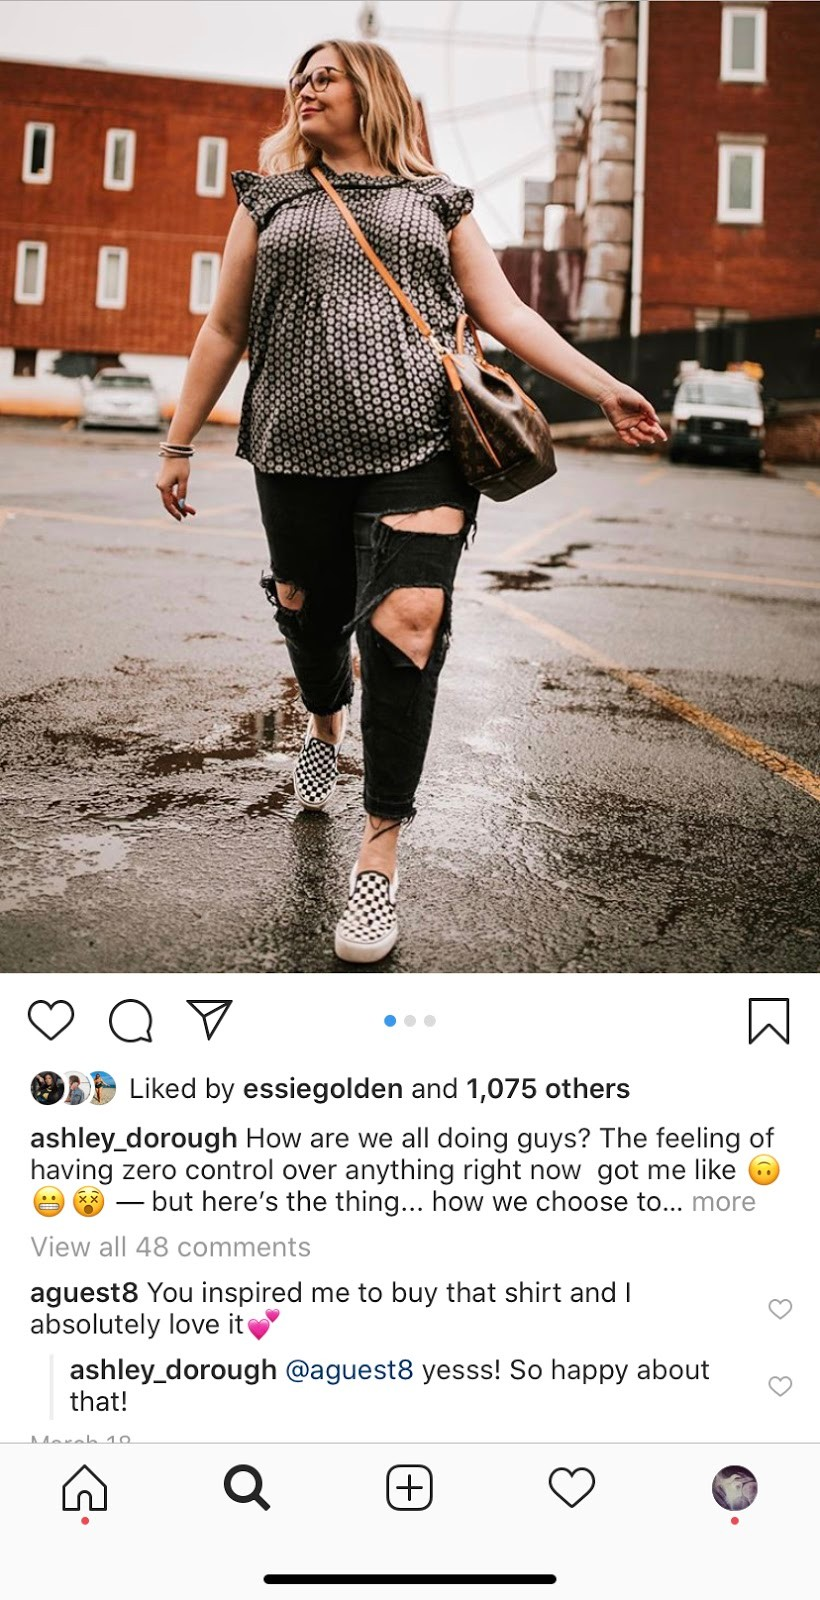 Instagram image of Ashley Dorough wearing a blouse